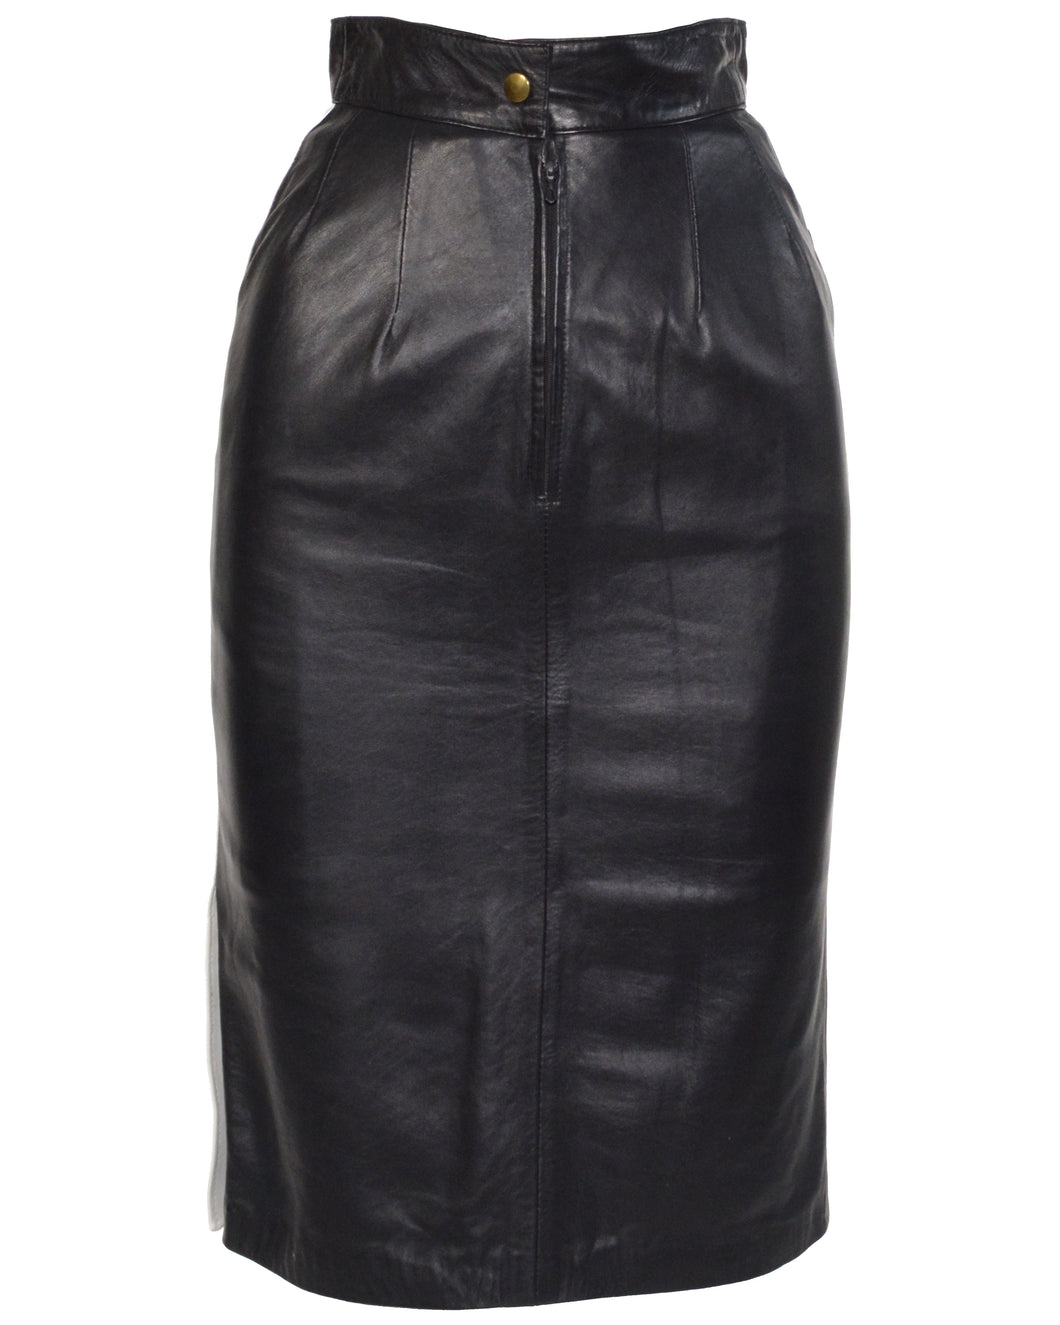 SAKS LEATHER PENCIL SKIRT - WOMEN'S SIZE FR36